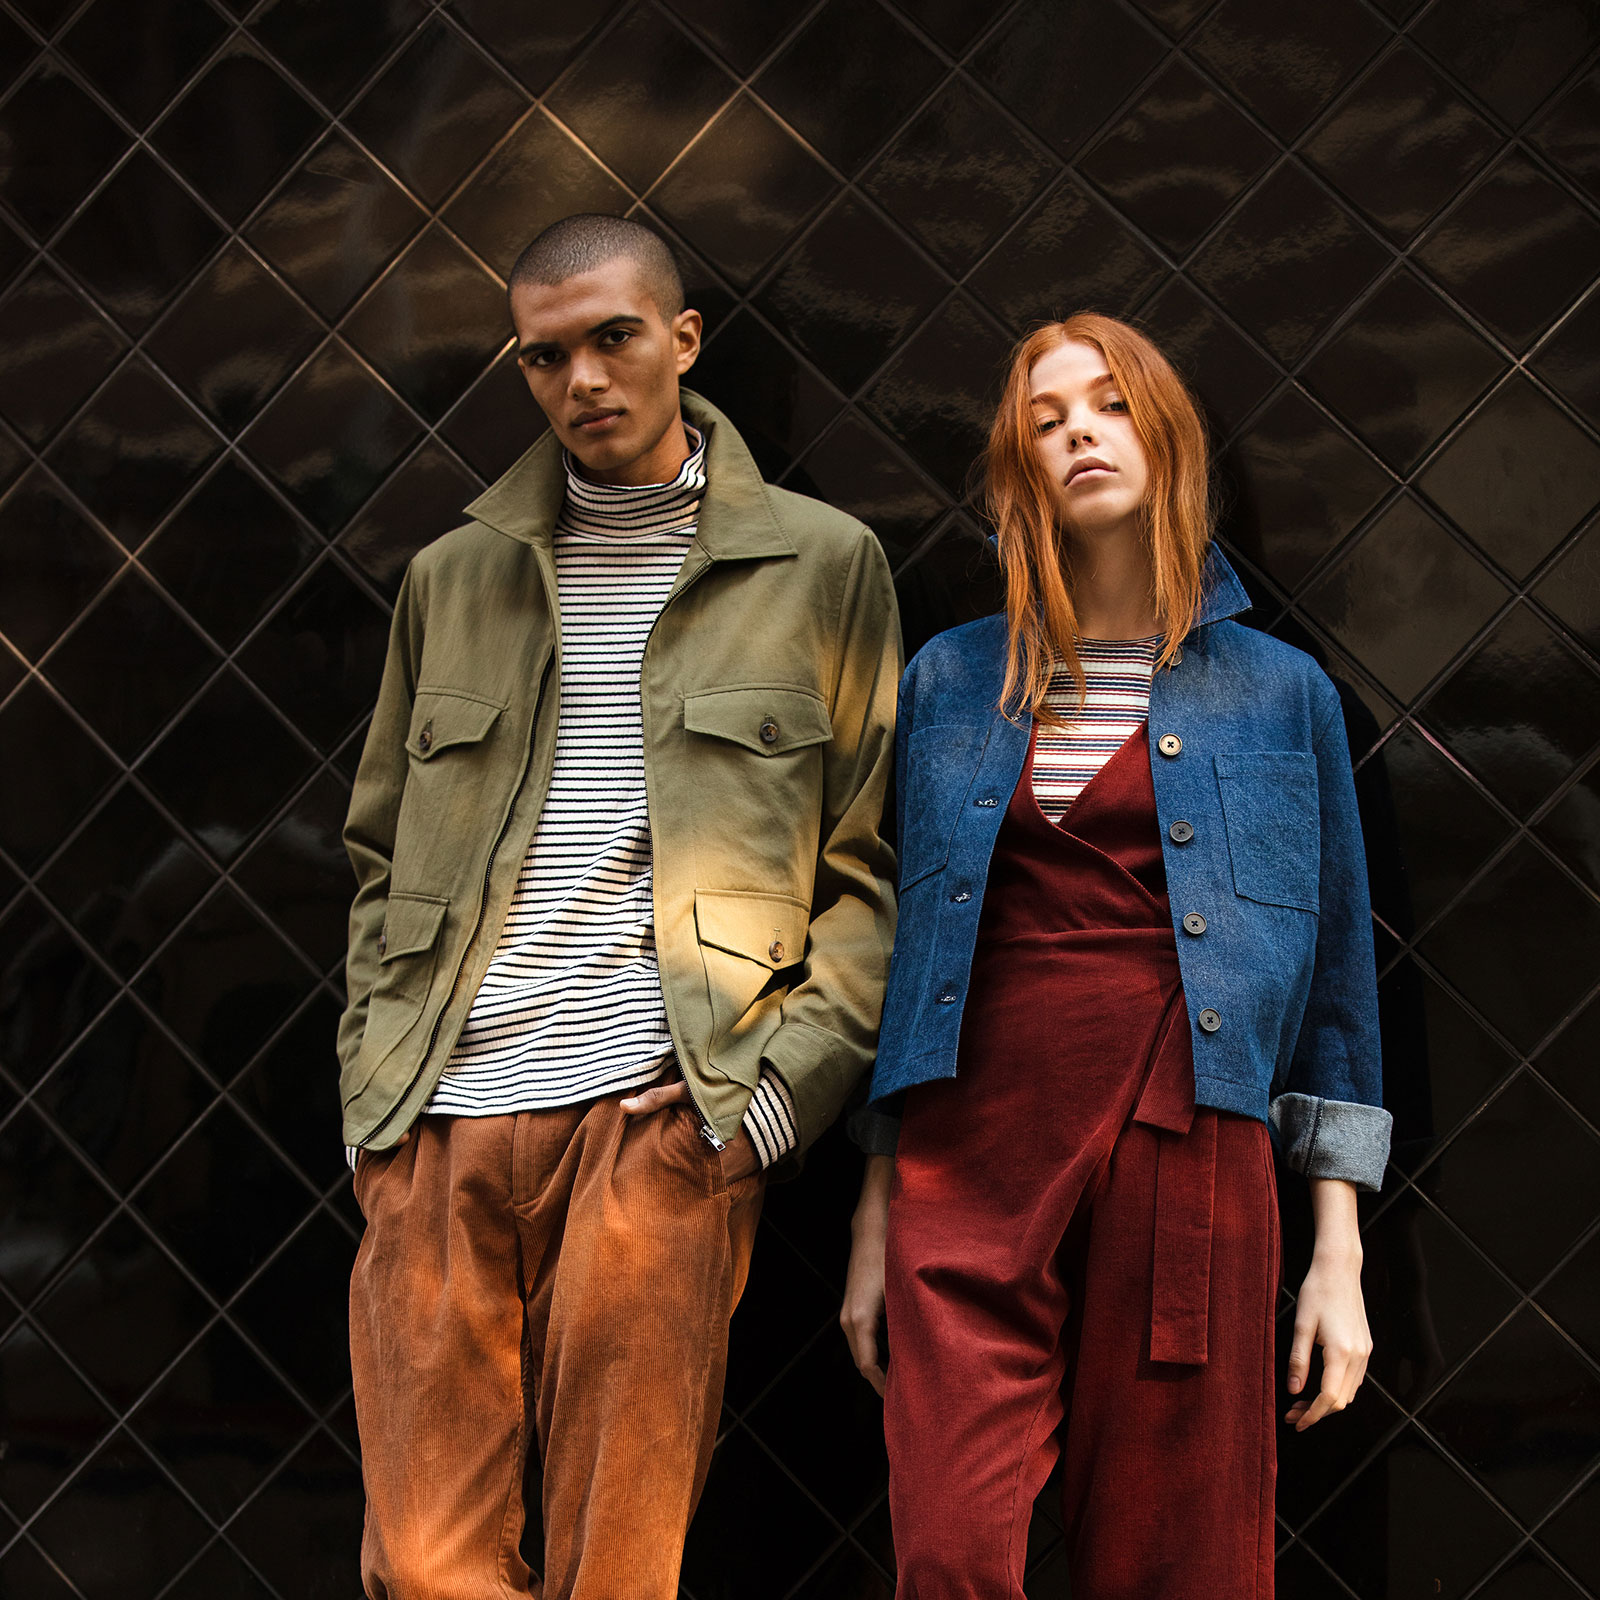 man wearing khaki jacket and orange pants leaning against a wall next to a woman wearing denim jacket and red jumpsuit